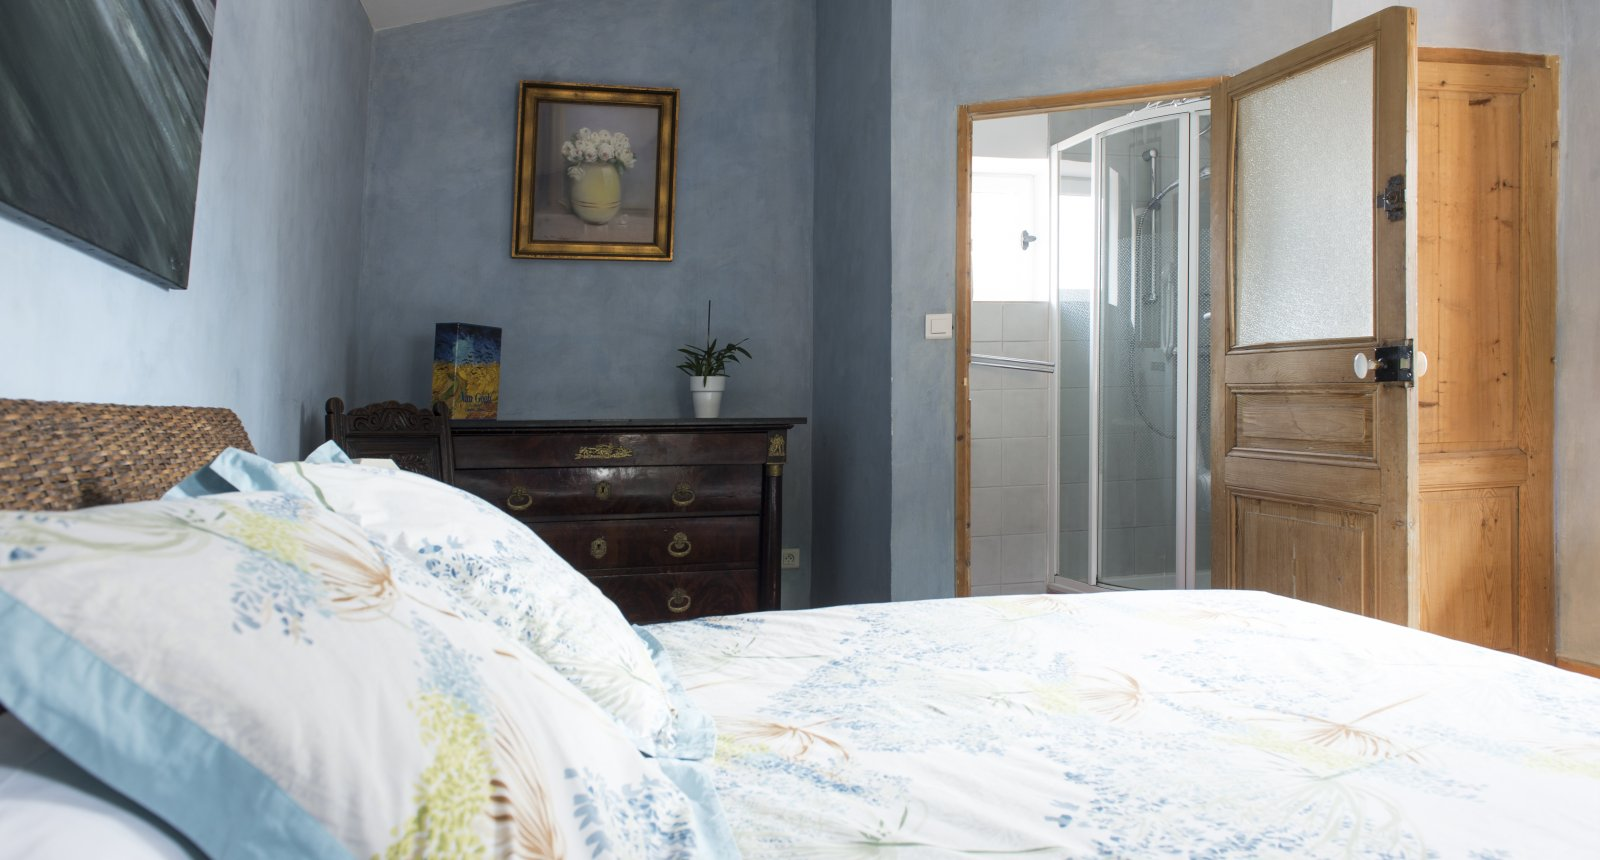 bedroom of the self-catering apartment